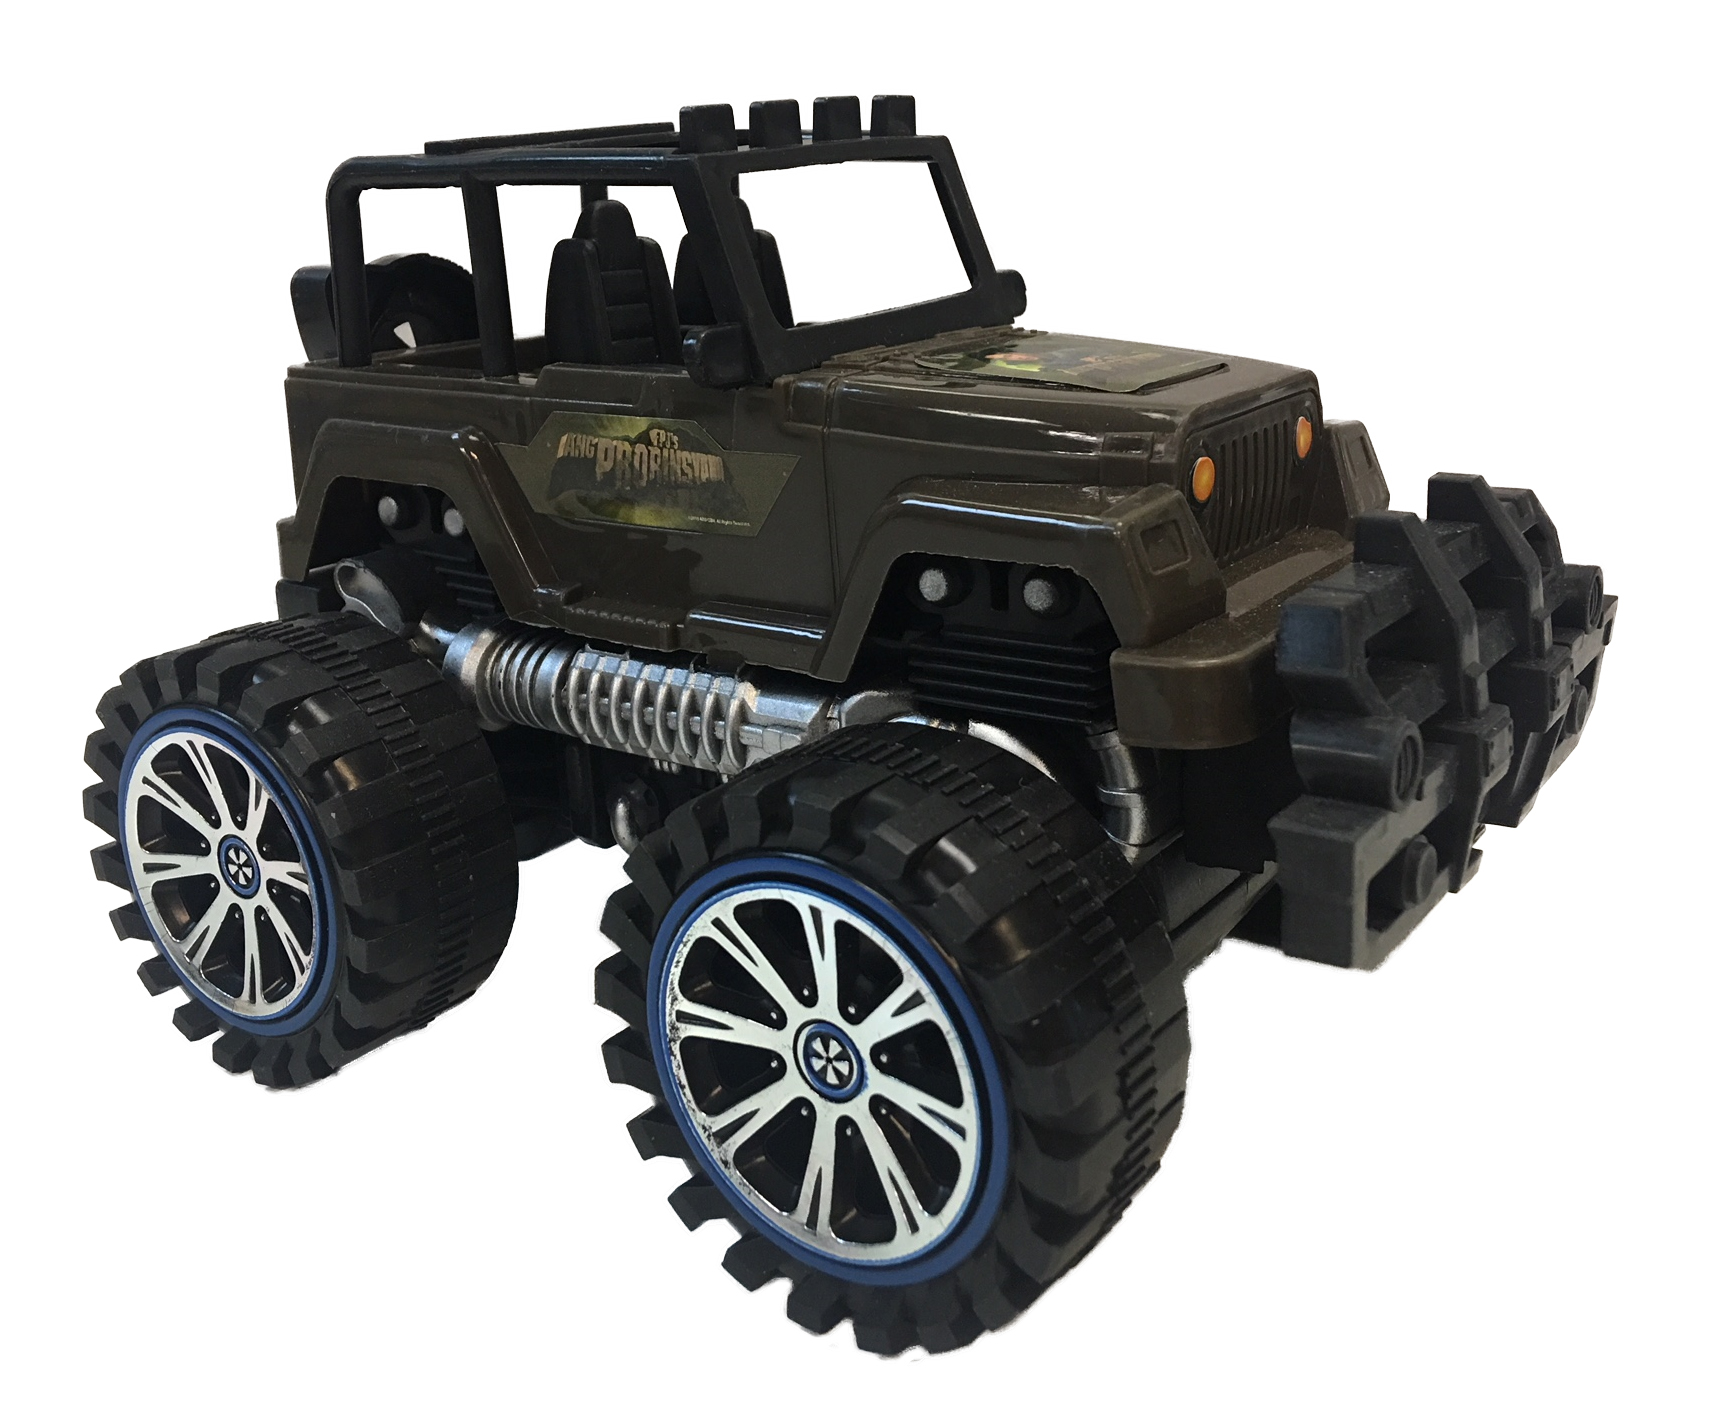 Toy jeep